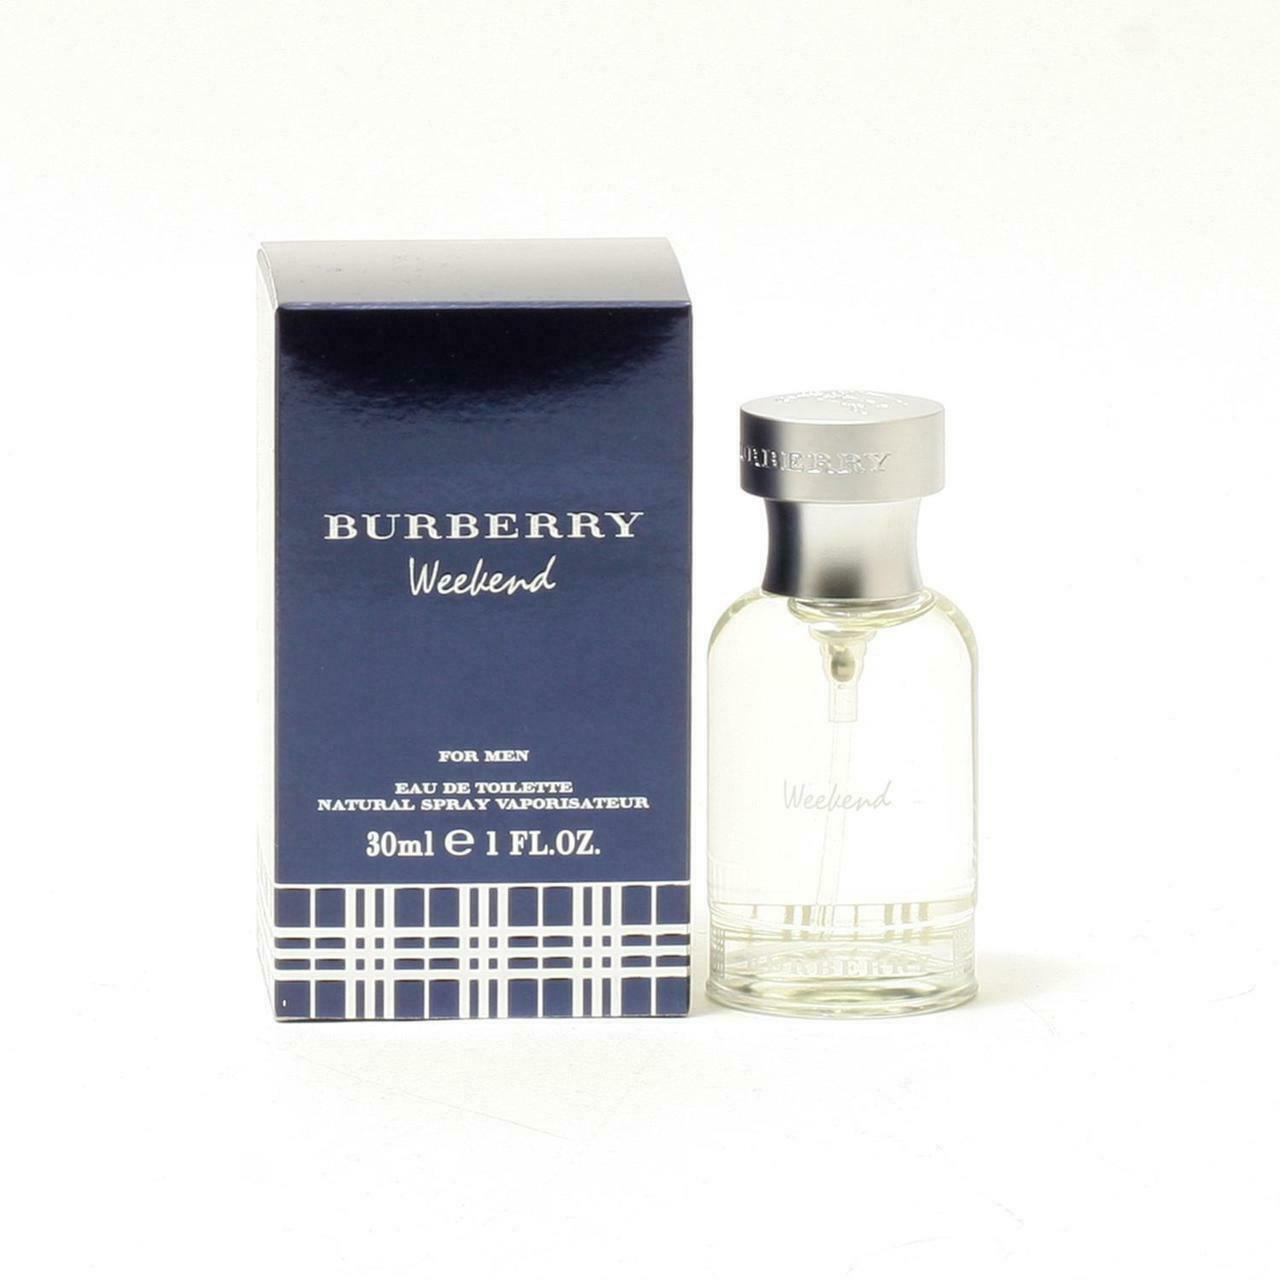 Primary image for Burberry Weekend Men - Edt Spray 1 OZ